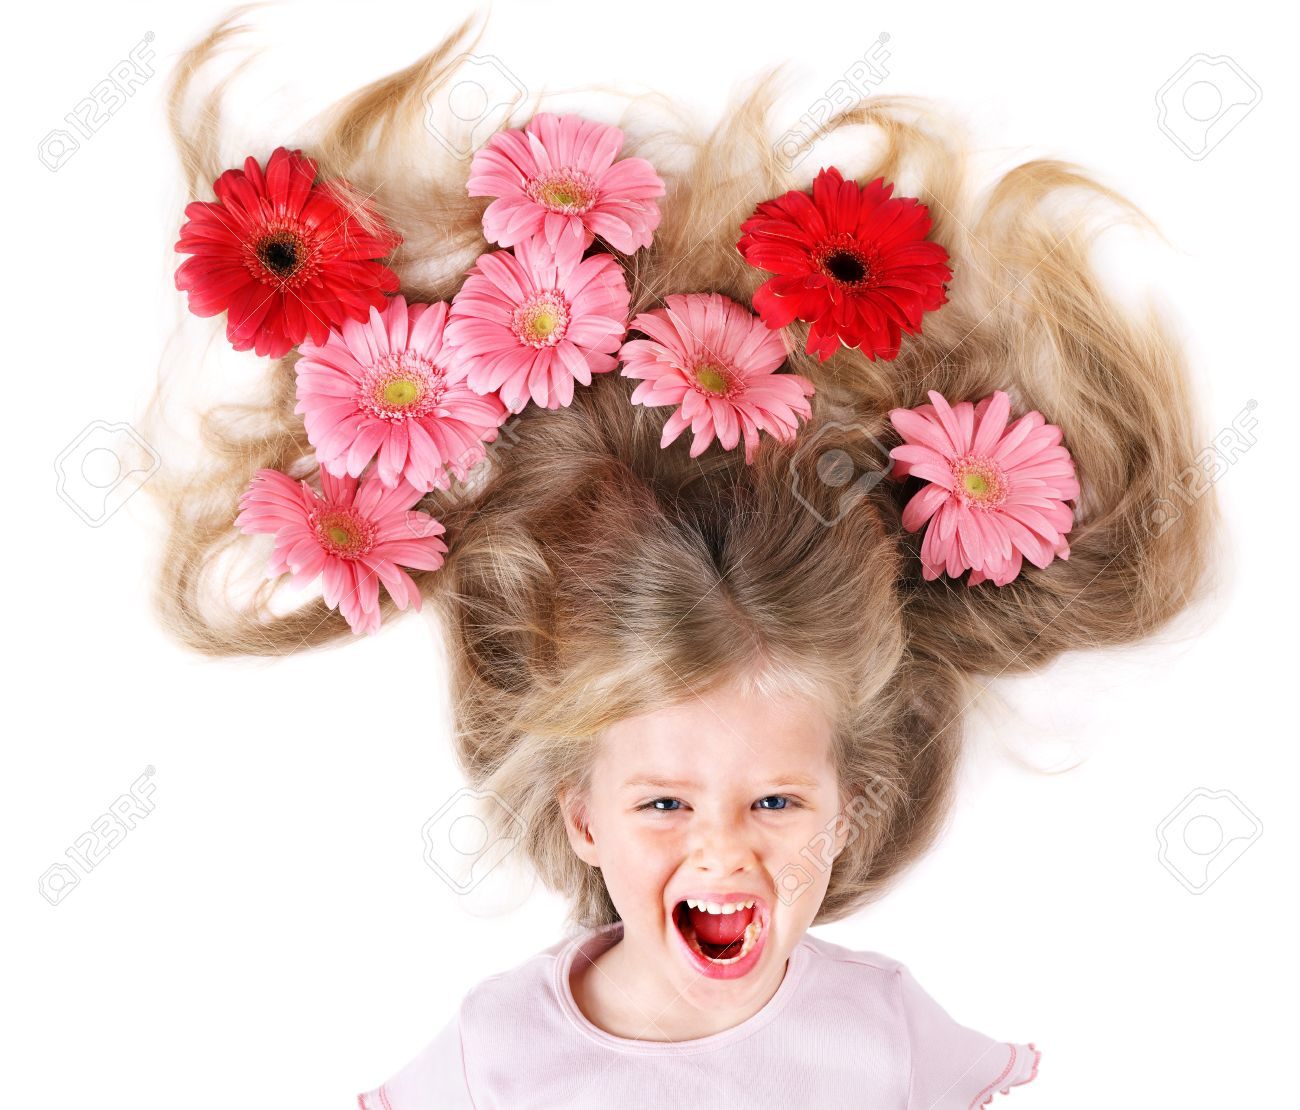 Swell Little Cute Girl With Long Hair And Flowers Spring Hairstyle Short Hairstyles For Black Women Fulllsitofus